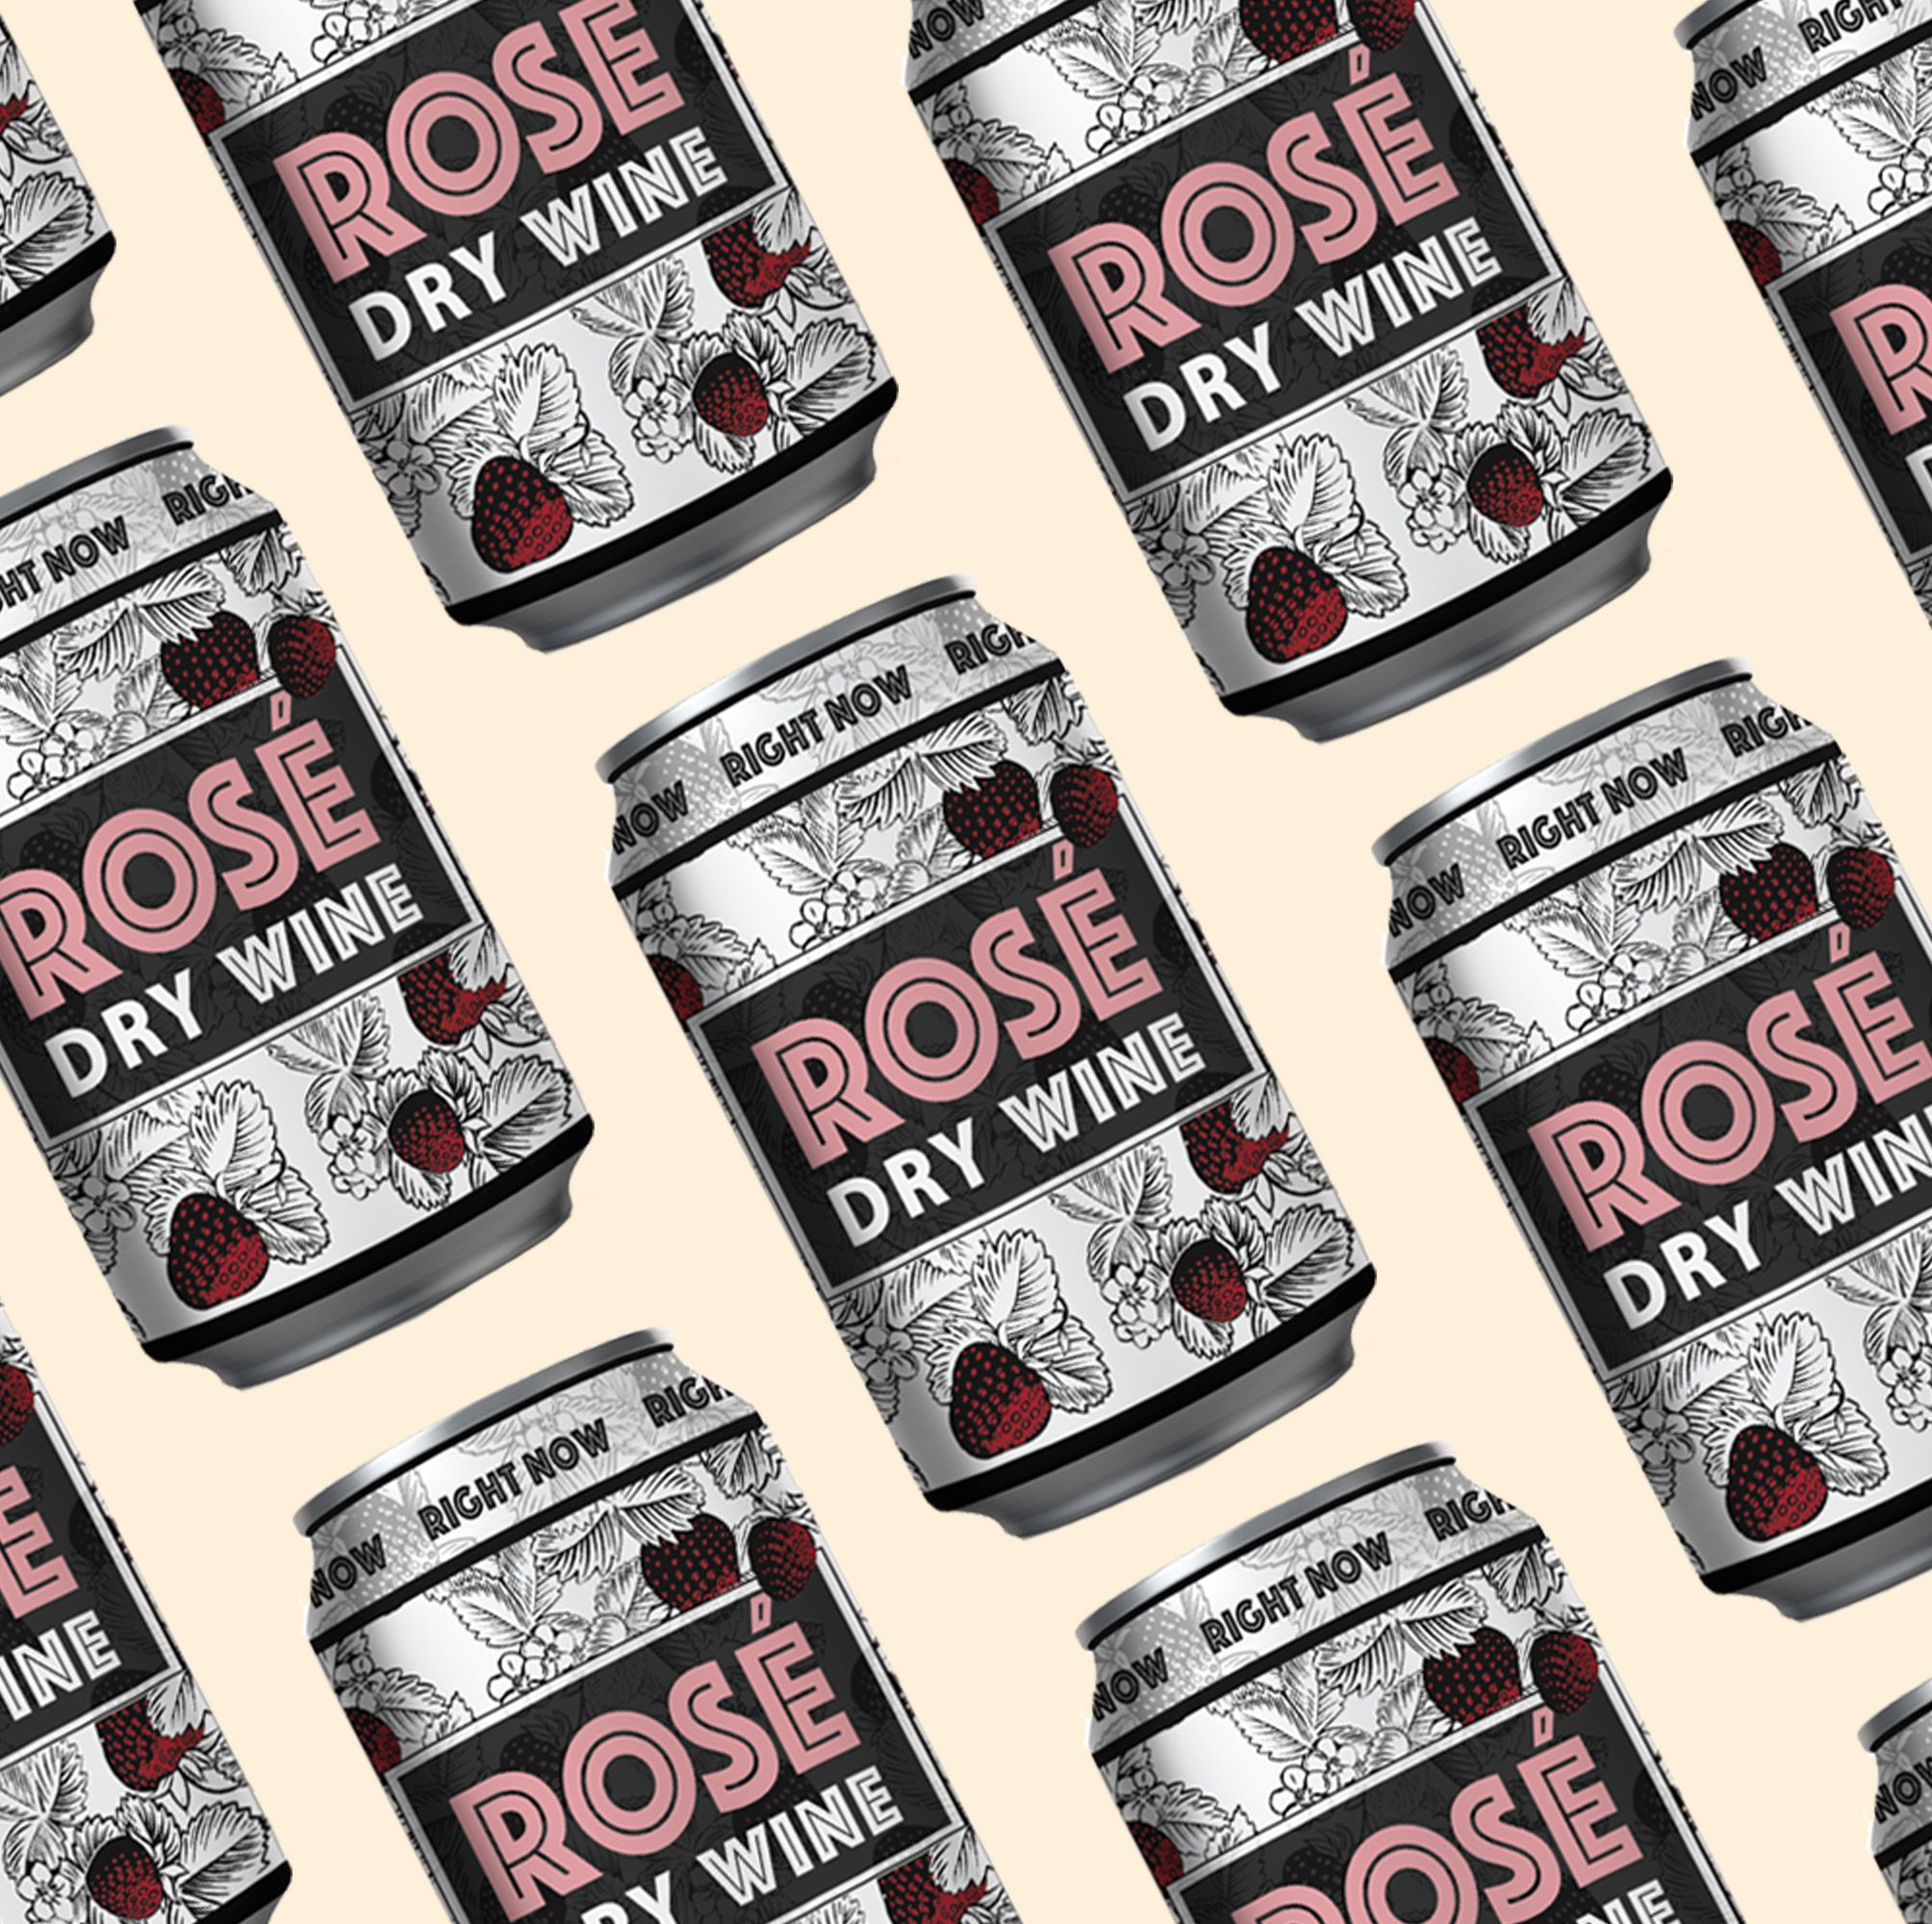 10+ Best Canned Wine Brands to Stash In Your Picnic Basket